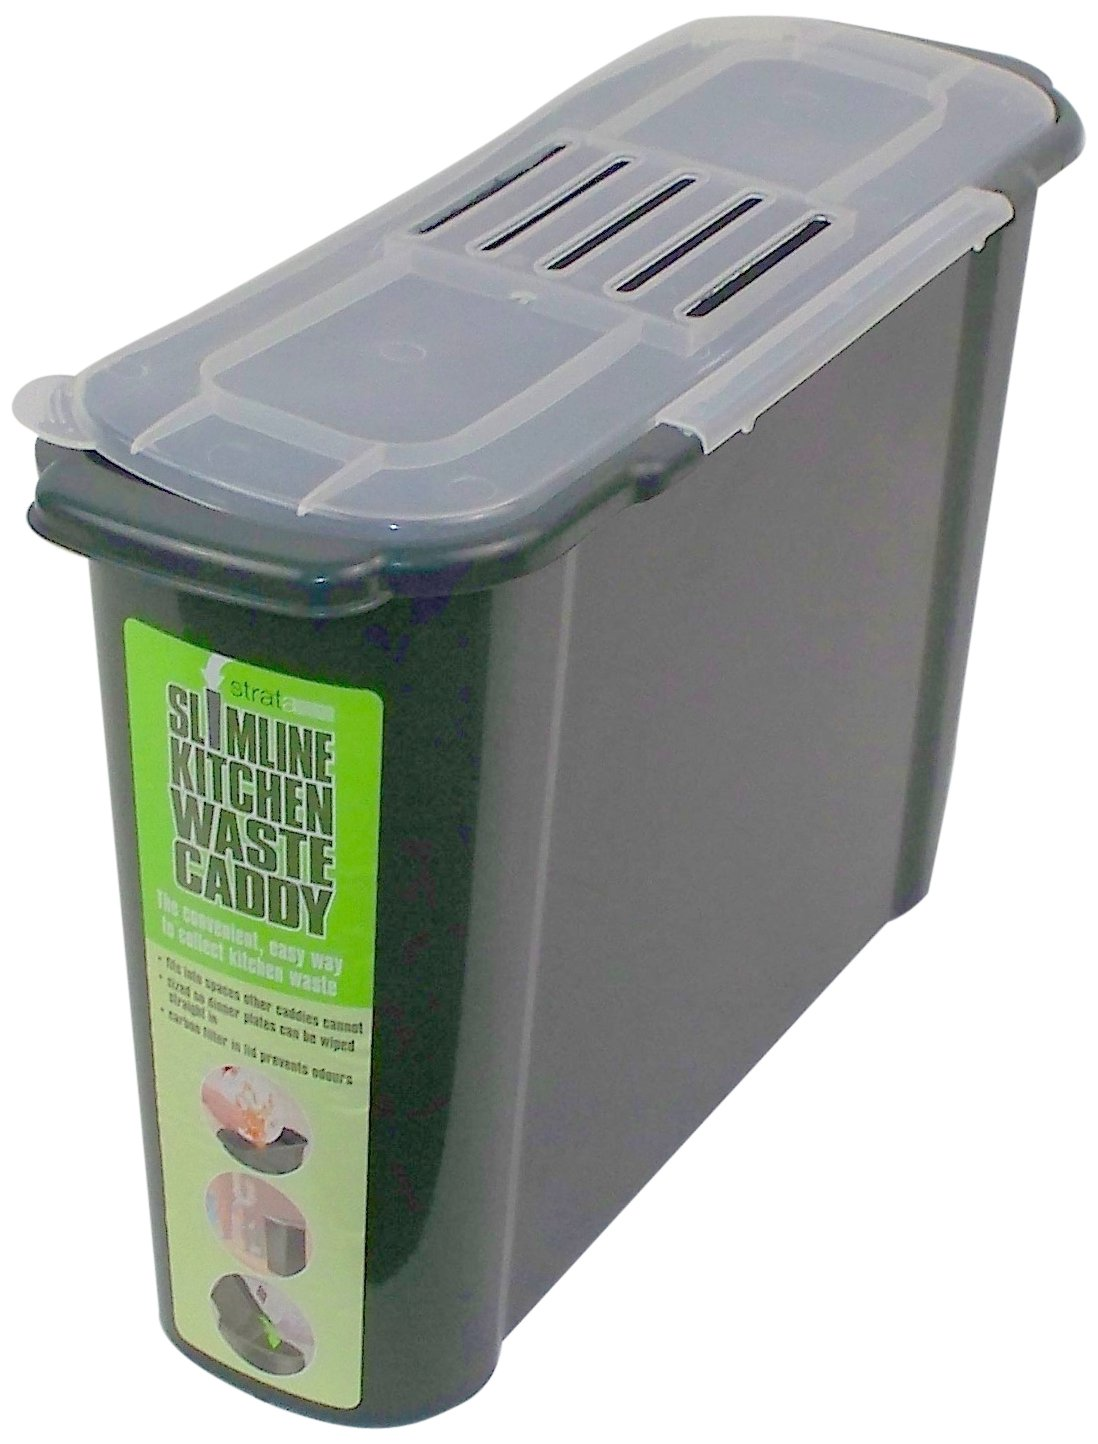 Amazon.com : Bosmere K779 Slim Kitchen Recycled Plastic Compost Caddy :  Indoor Compost Bins : Garden U0026 Outdoor